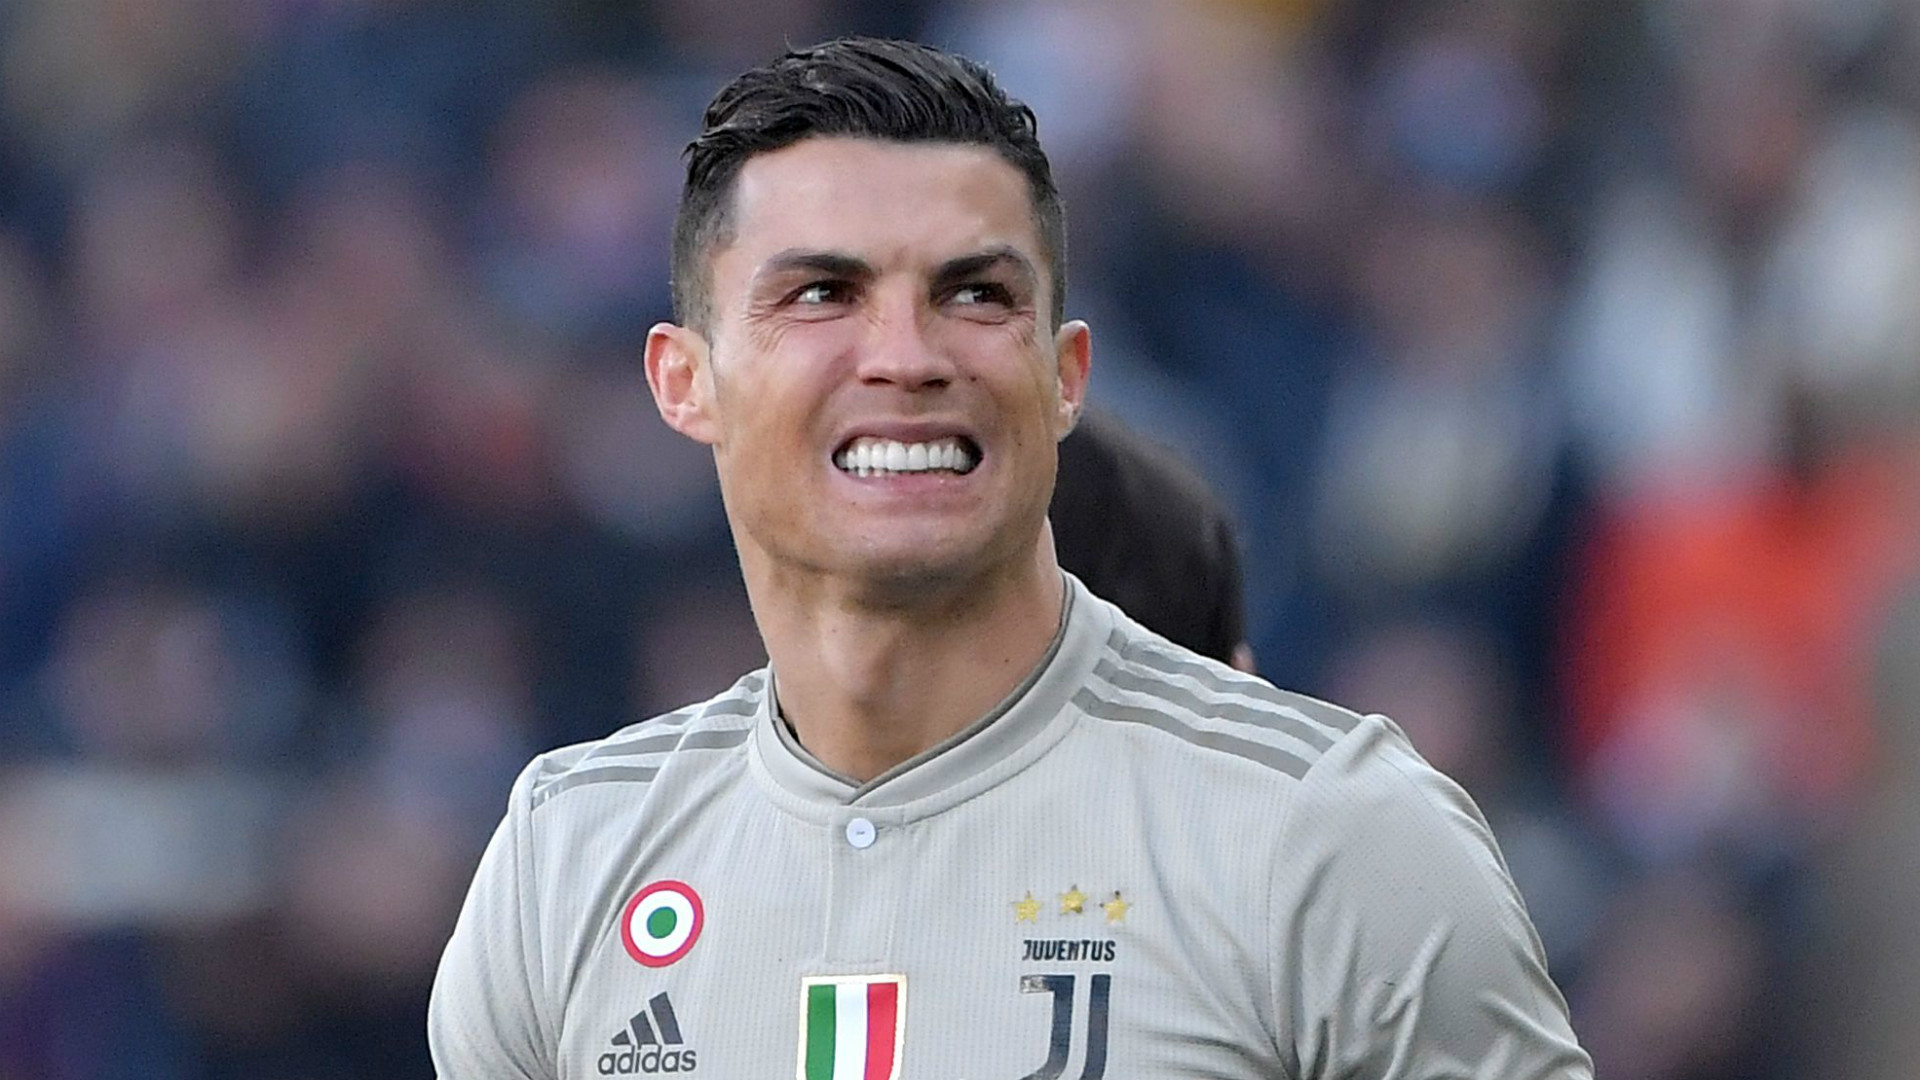 Medical Team At Juventus Gives Update On Ronaldo's Injury